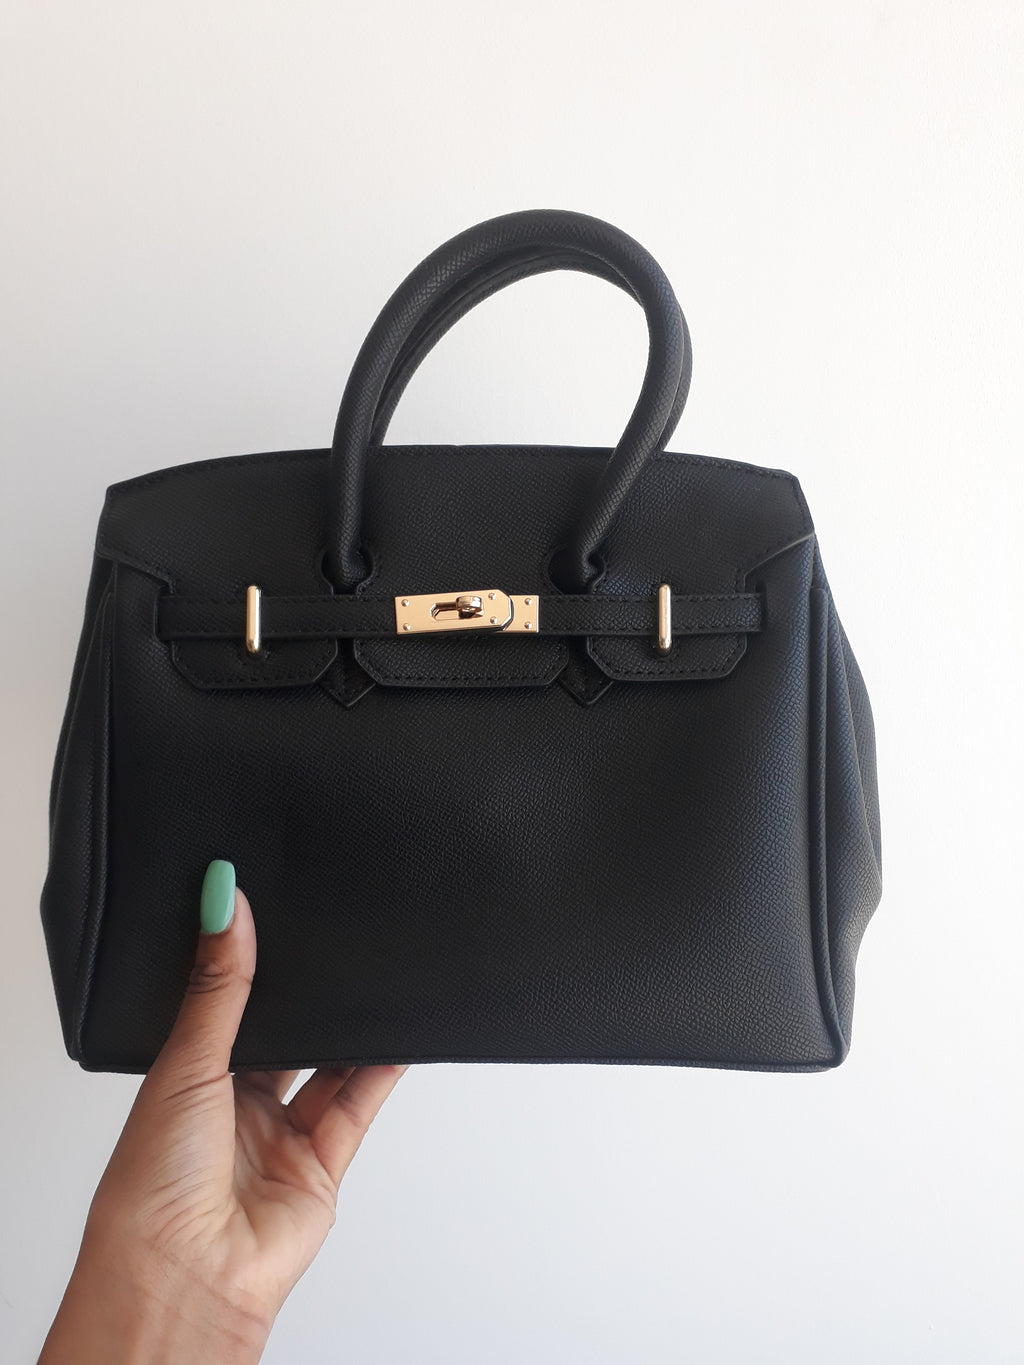 Amelia Shoulder handbag in Black